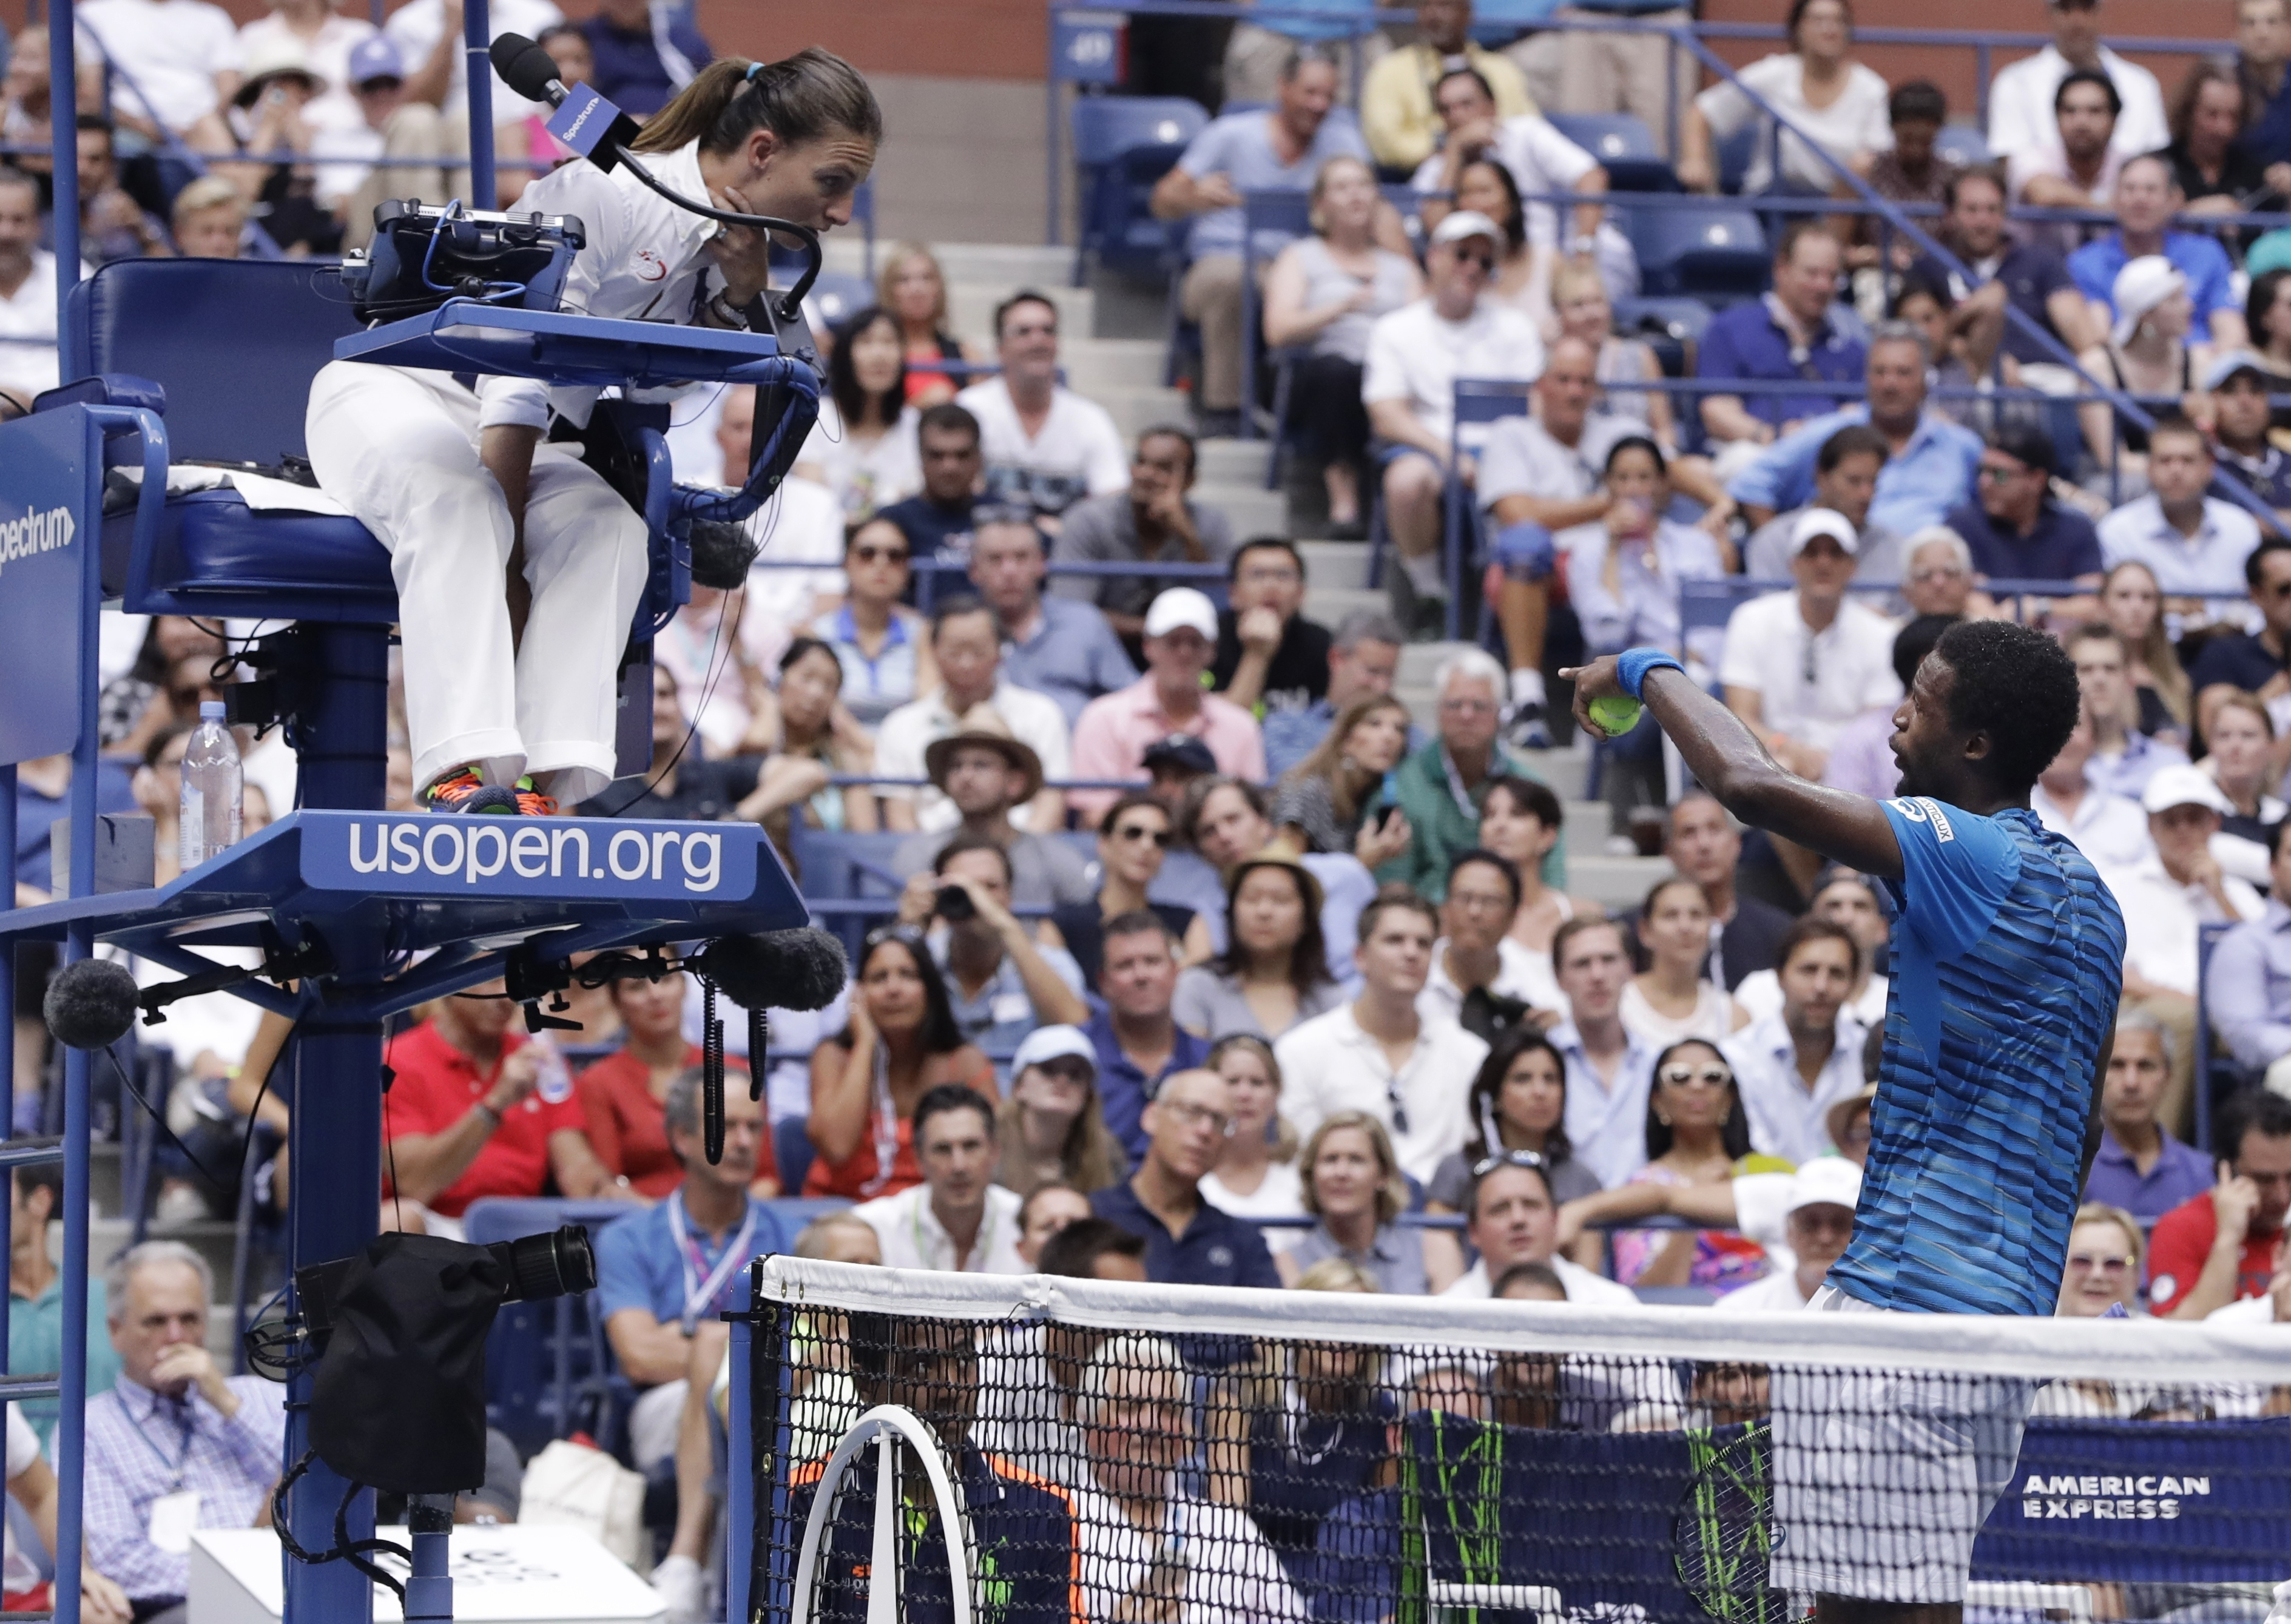 Gael Monfils, of France, talks with the chair umpire during the semifinals of the U.S. Open tennis tournament against Novak Djokovic, of Serbia, Friday, Sept. 9, 2016, in New York. (AP Photo/Darron Cummings)